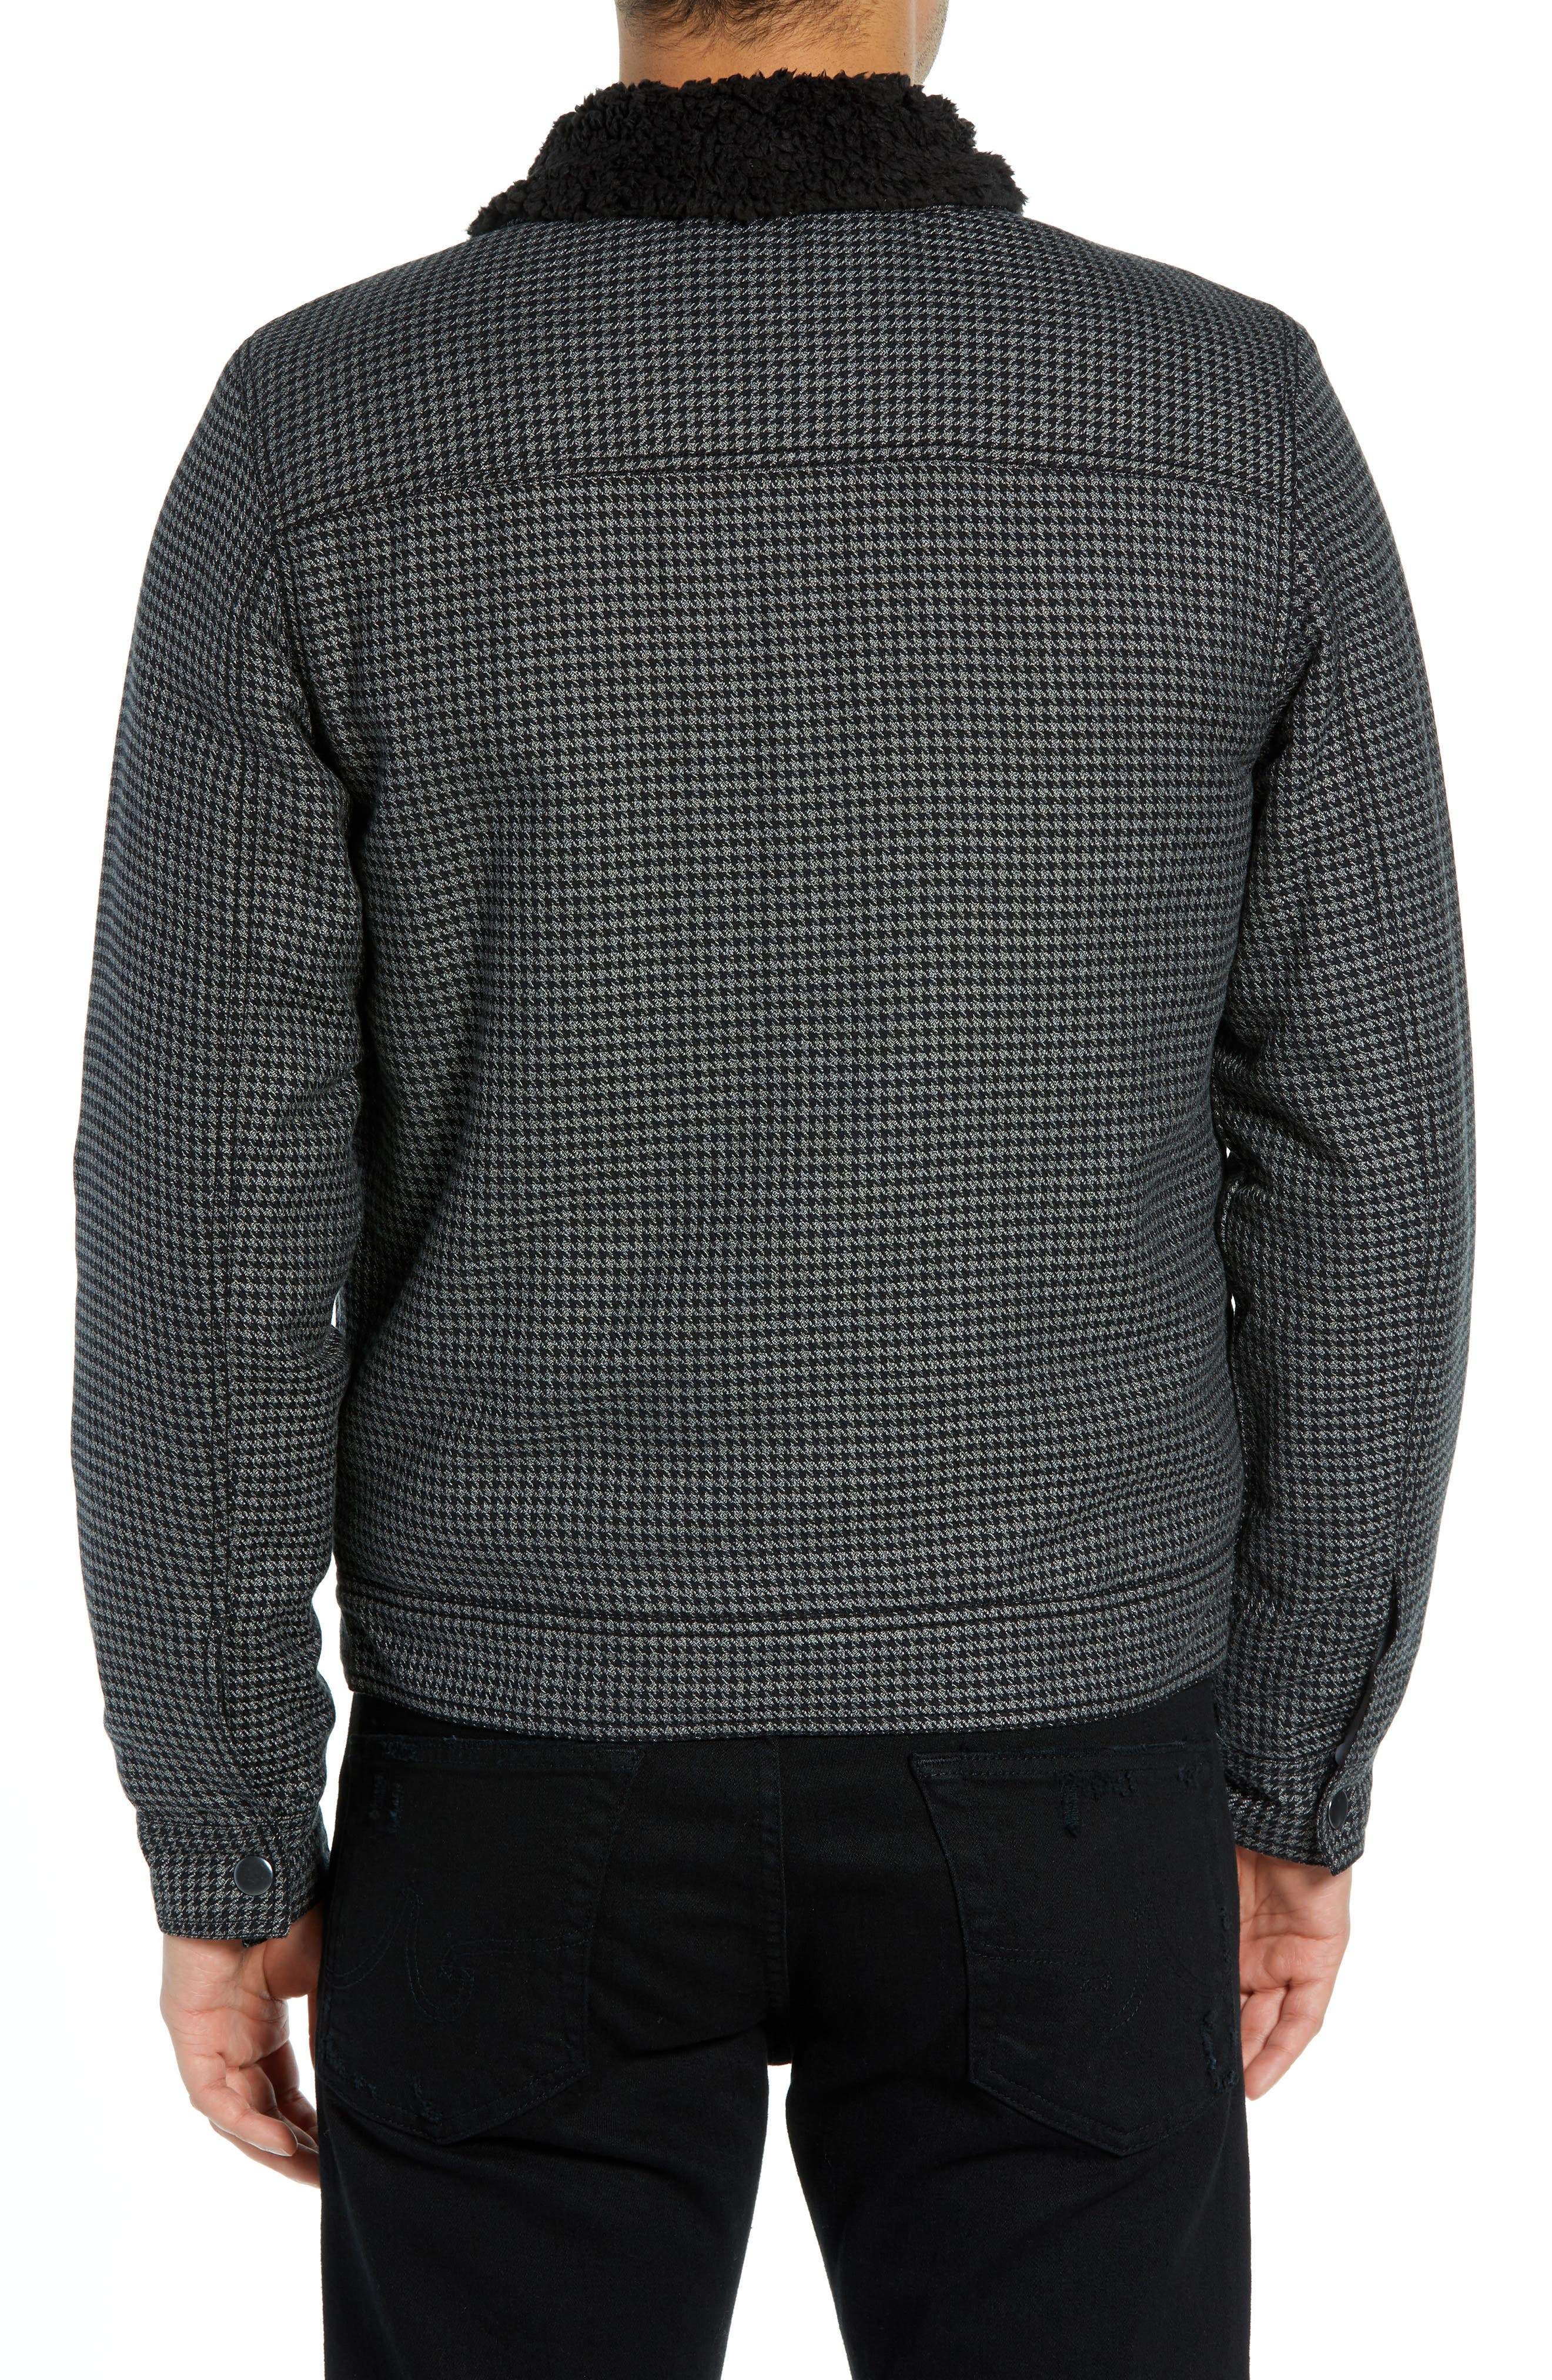 THE RAIL,                             Lined Houndstooth Trucker Jacket,                             Alternate thumbnail 2, color,                             001